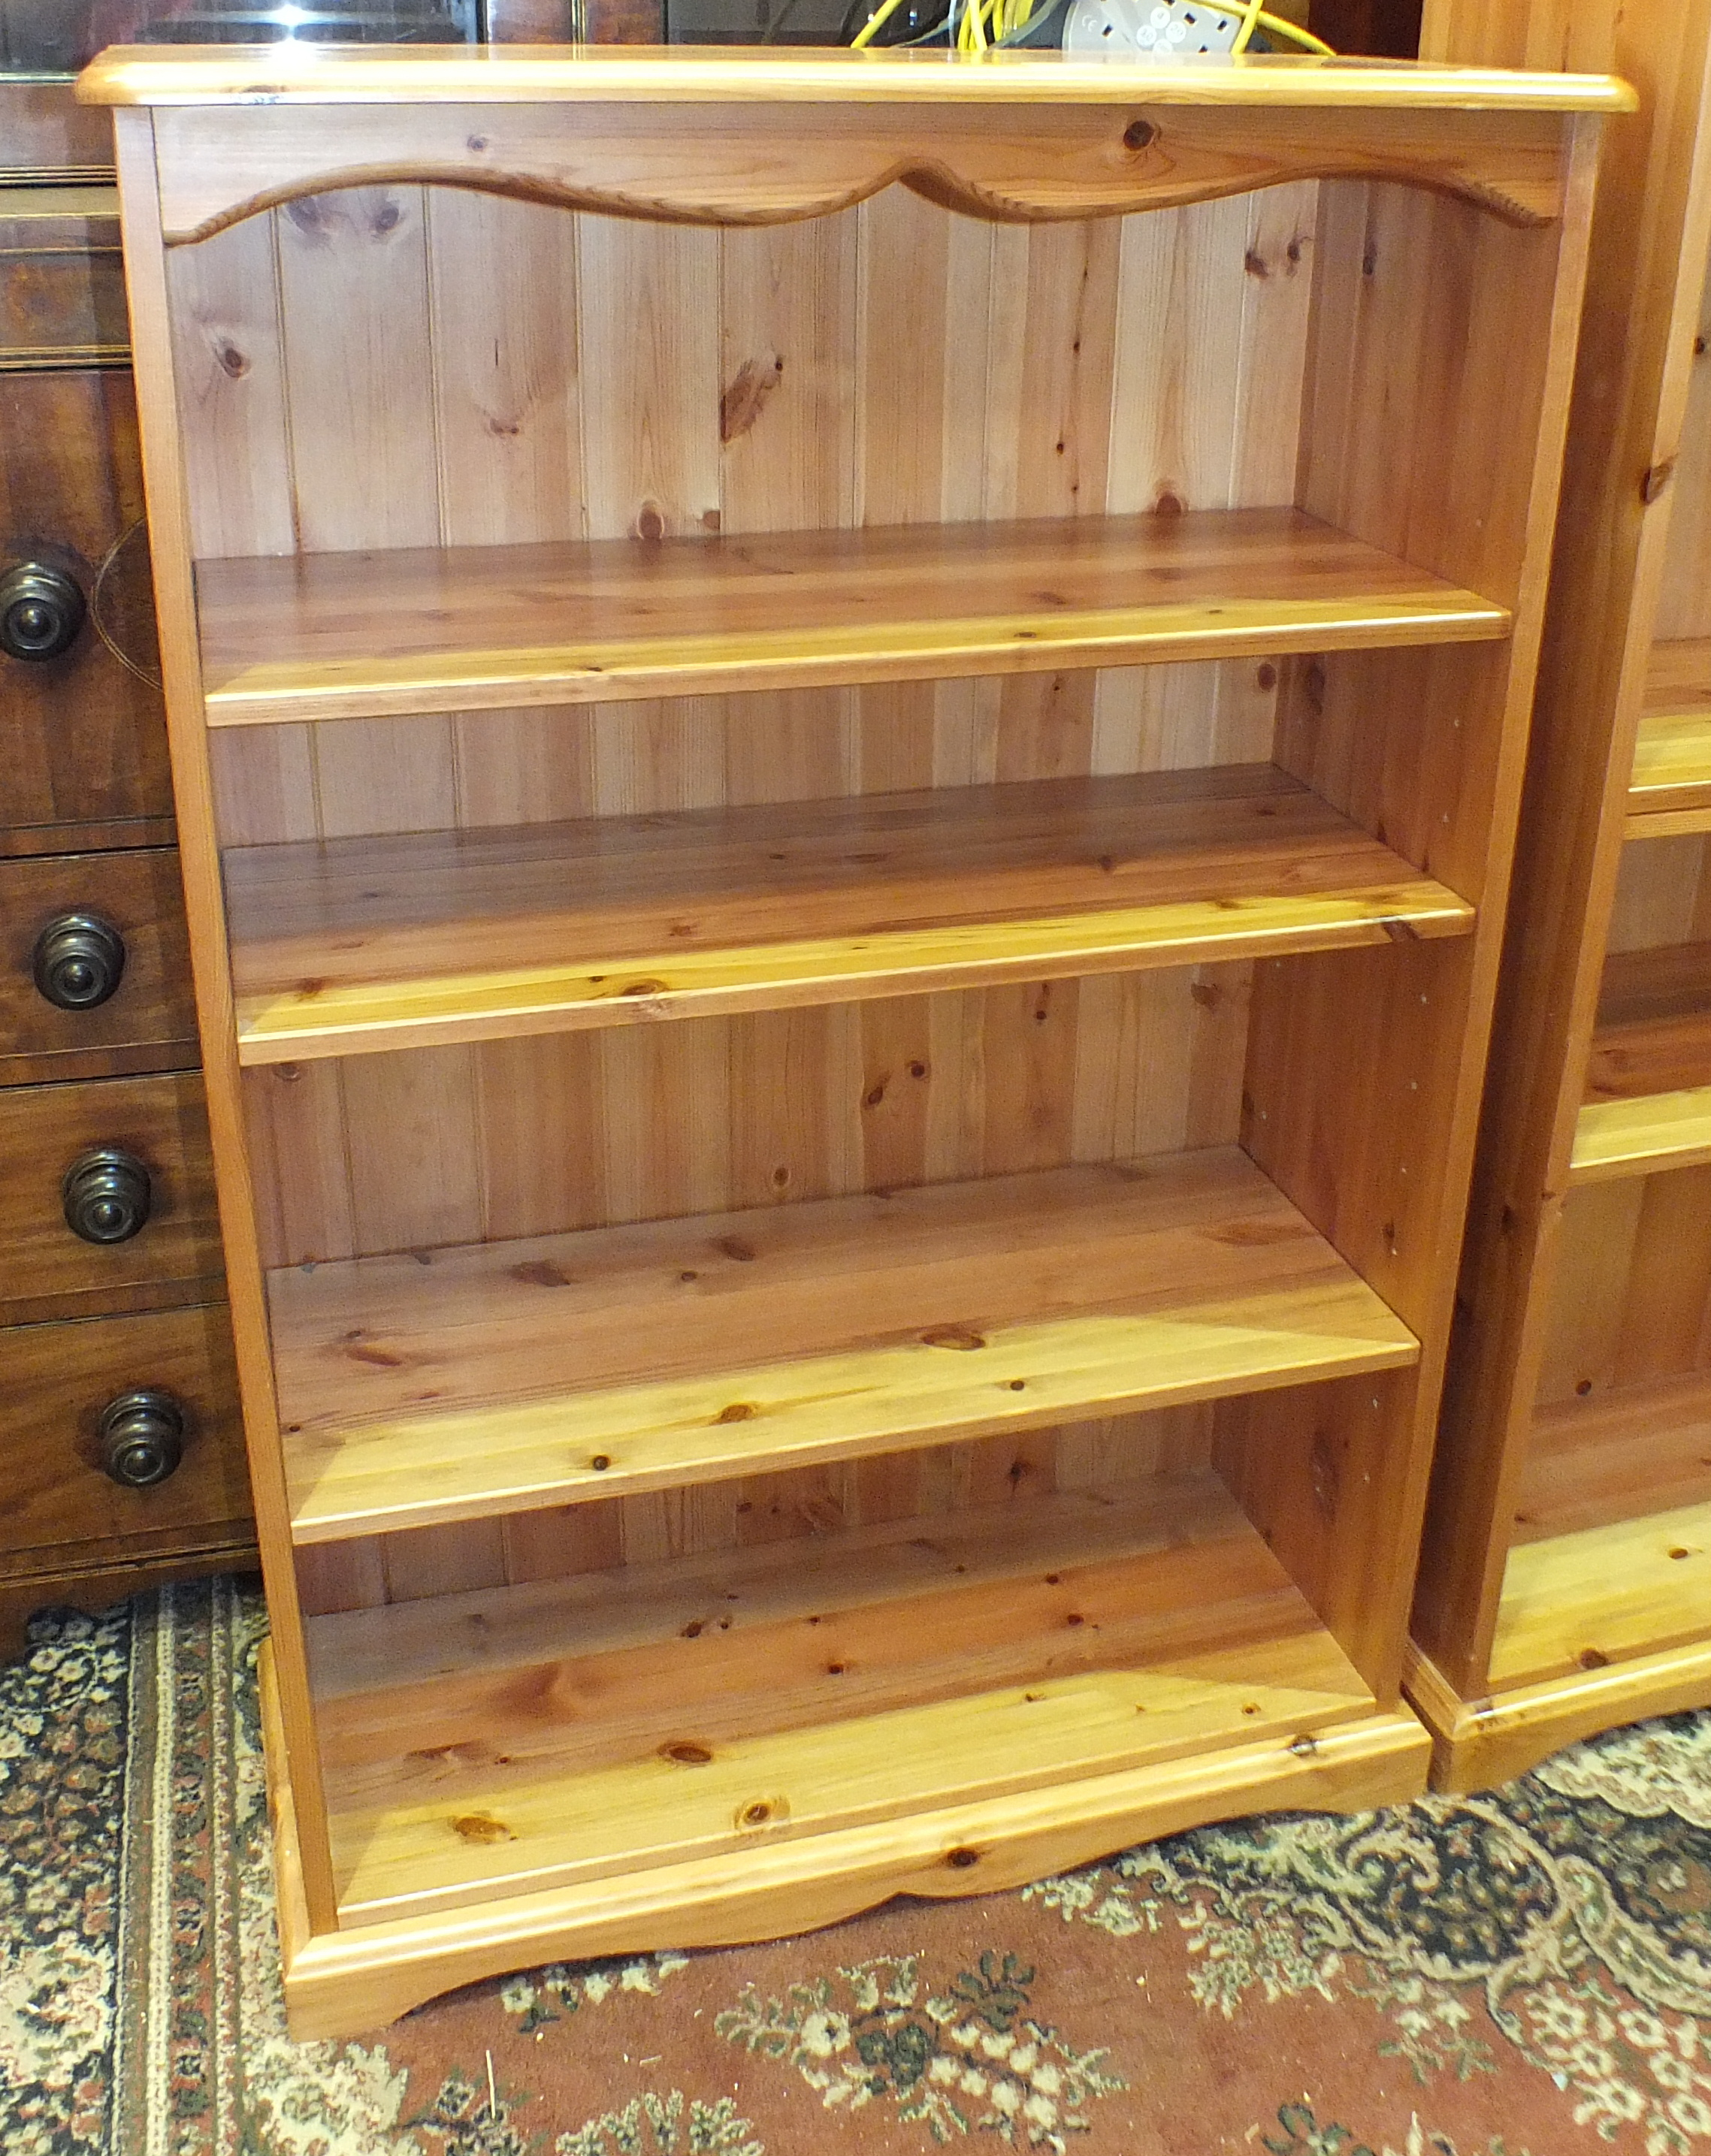 Lot 50 - A set of modern pine open shelves, 80cm wide, 183cm high and a similar smaller set, 80cm wide, 120cm